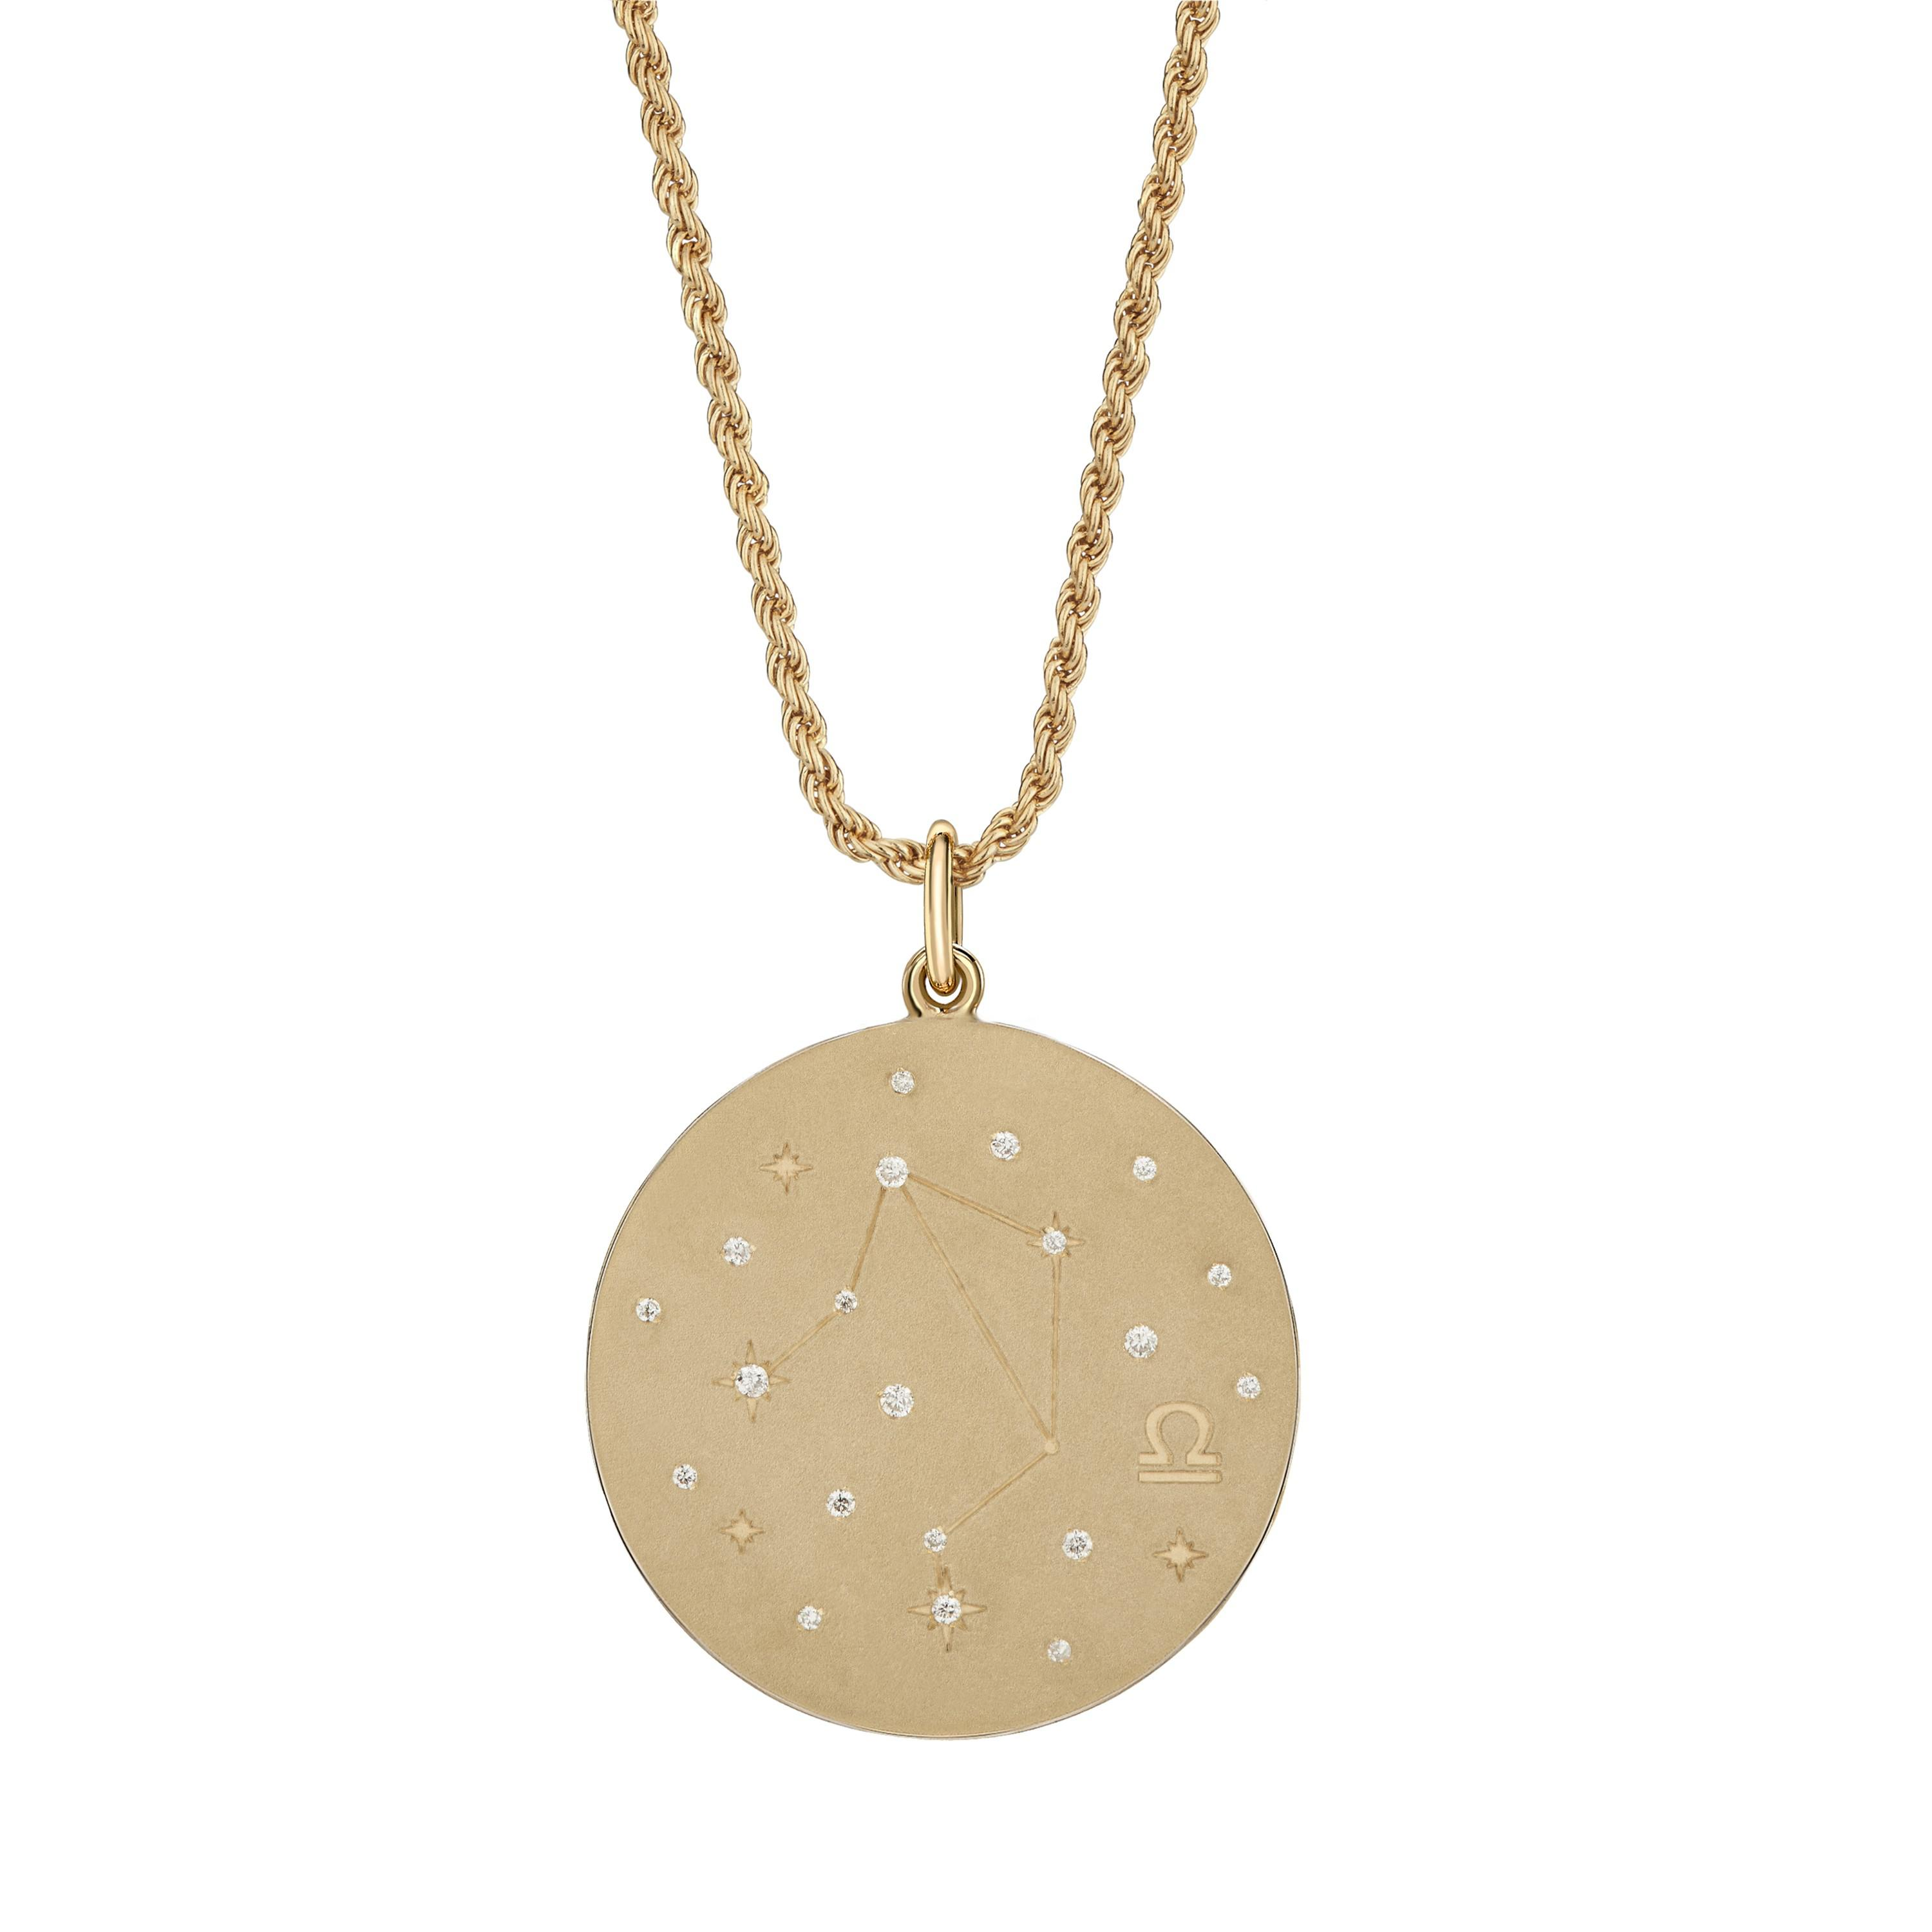 necklace horoscope libra zodiac gold taurus